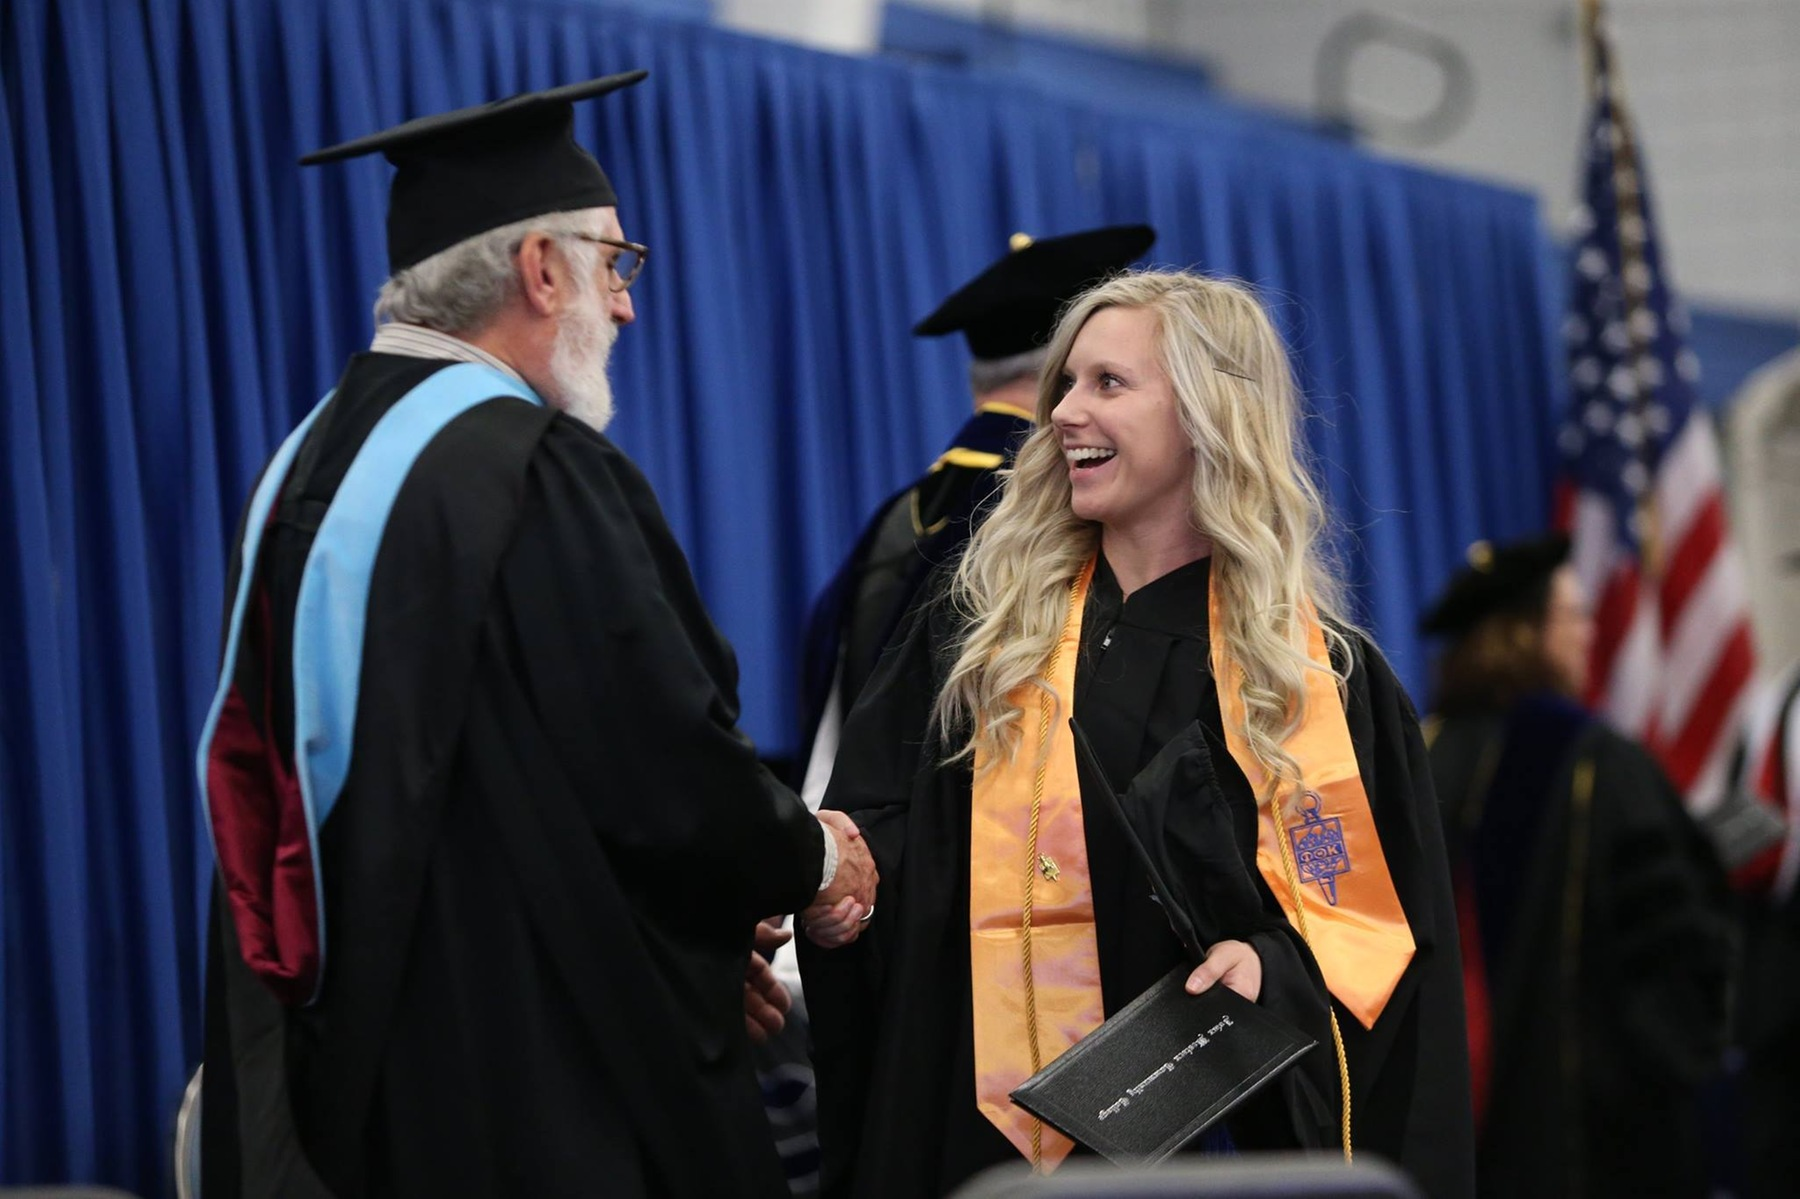 2018 Spring Commencement streamed for FREE in its entirety!